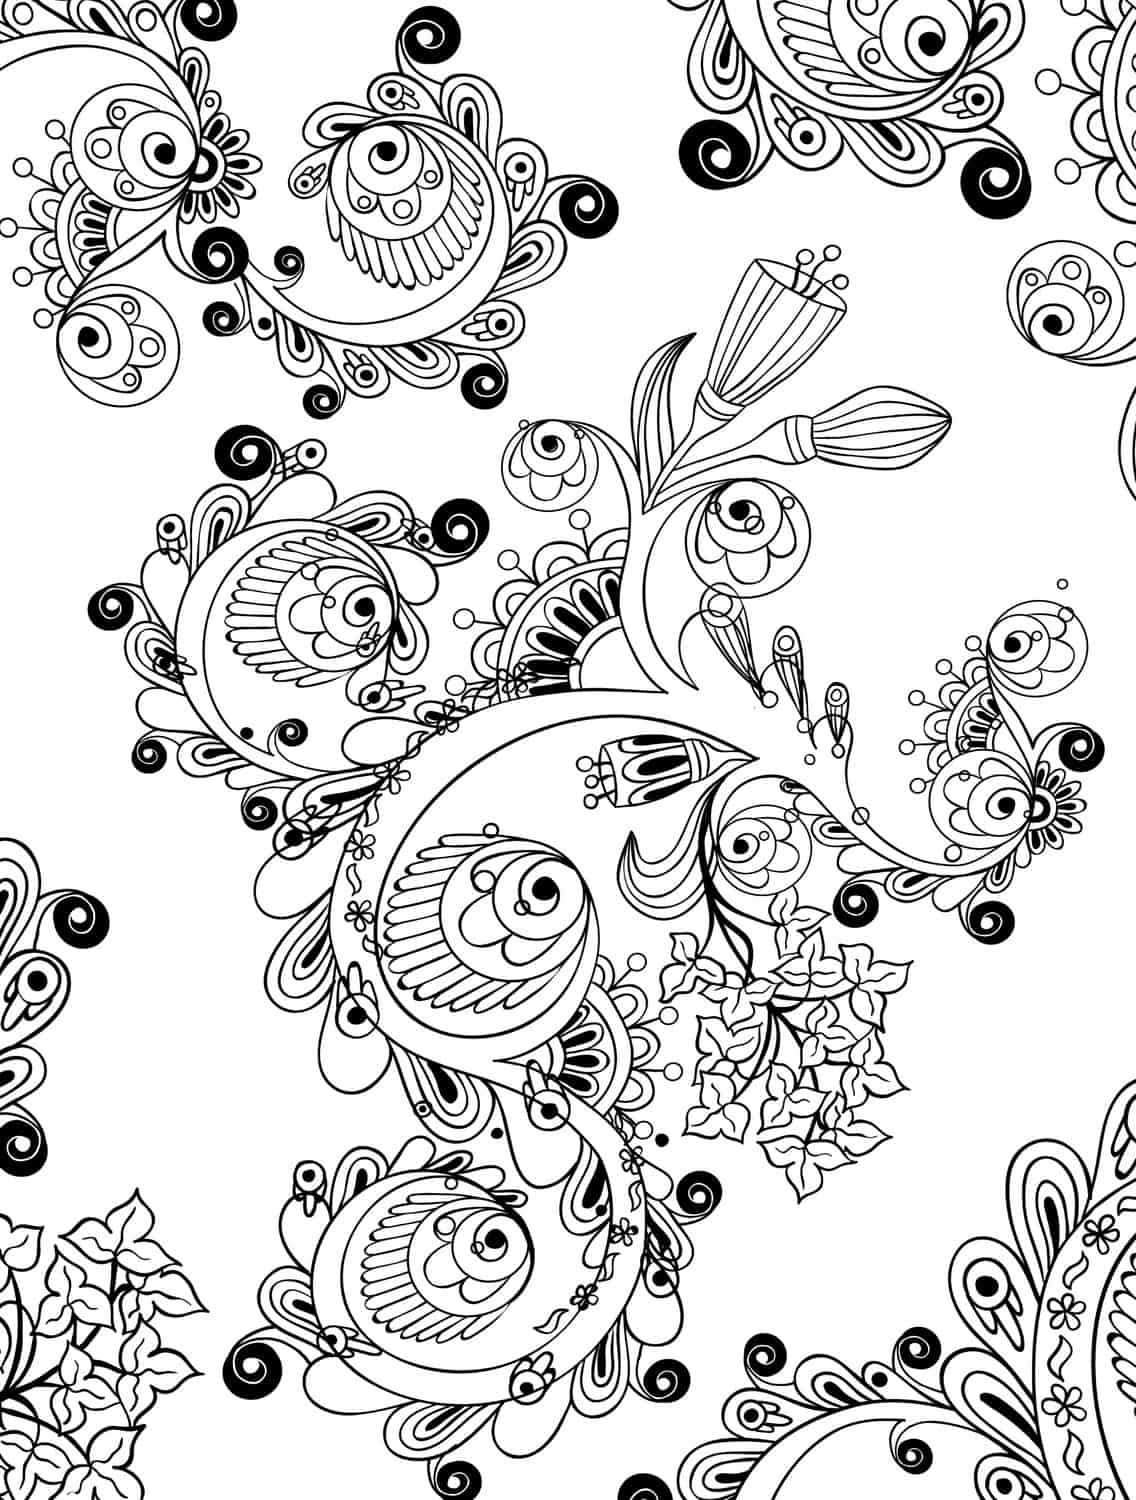 15 crazy busy coloring pages for adults - page 14 of 16